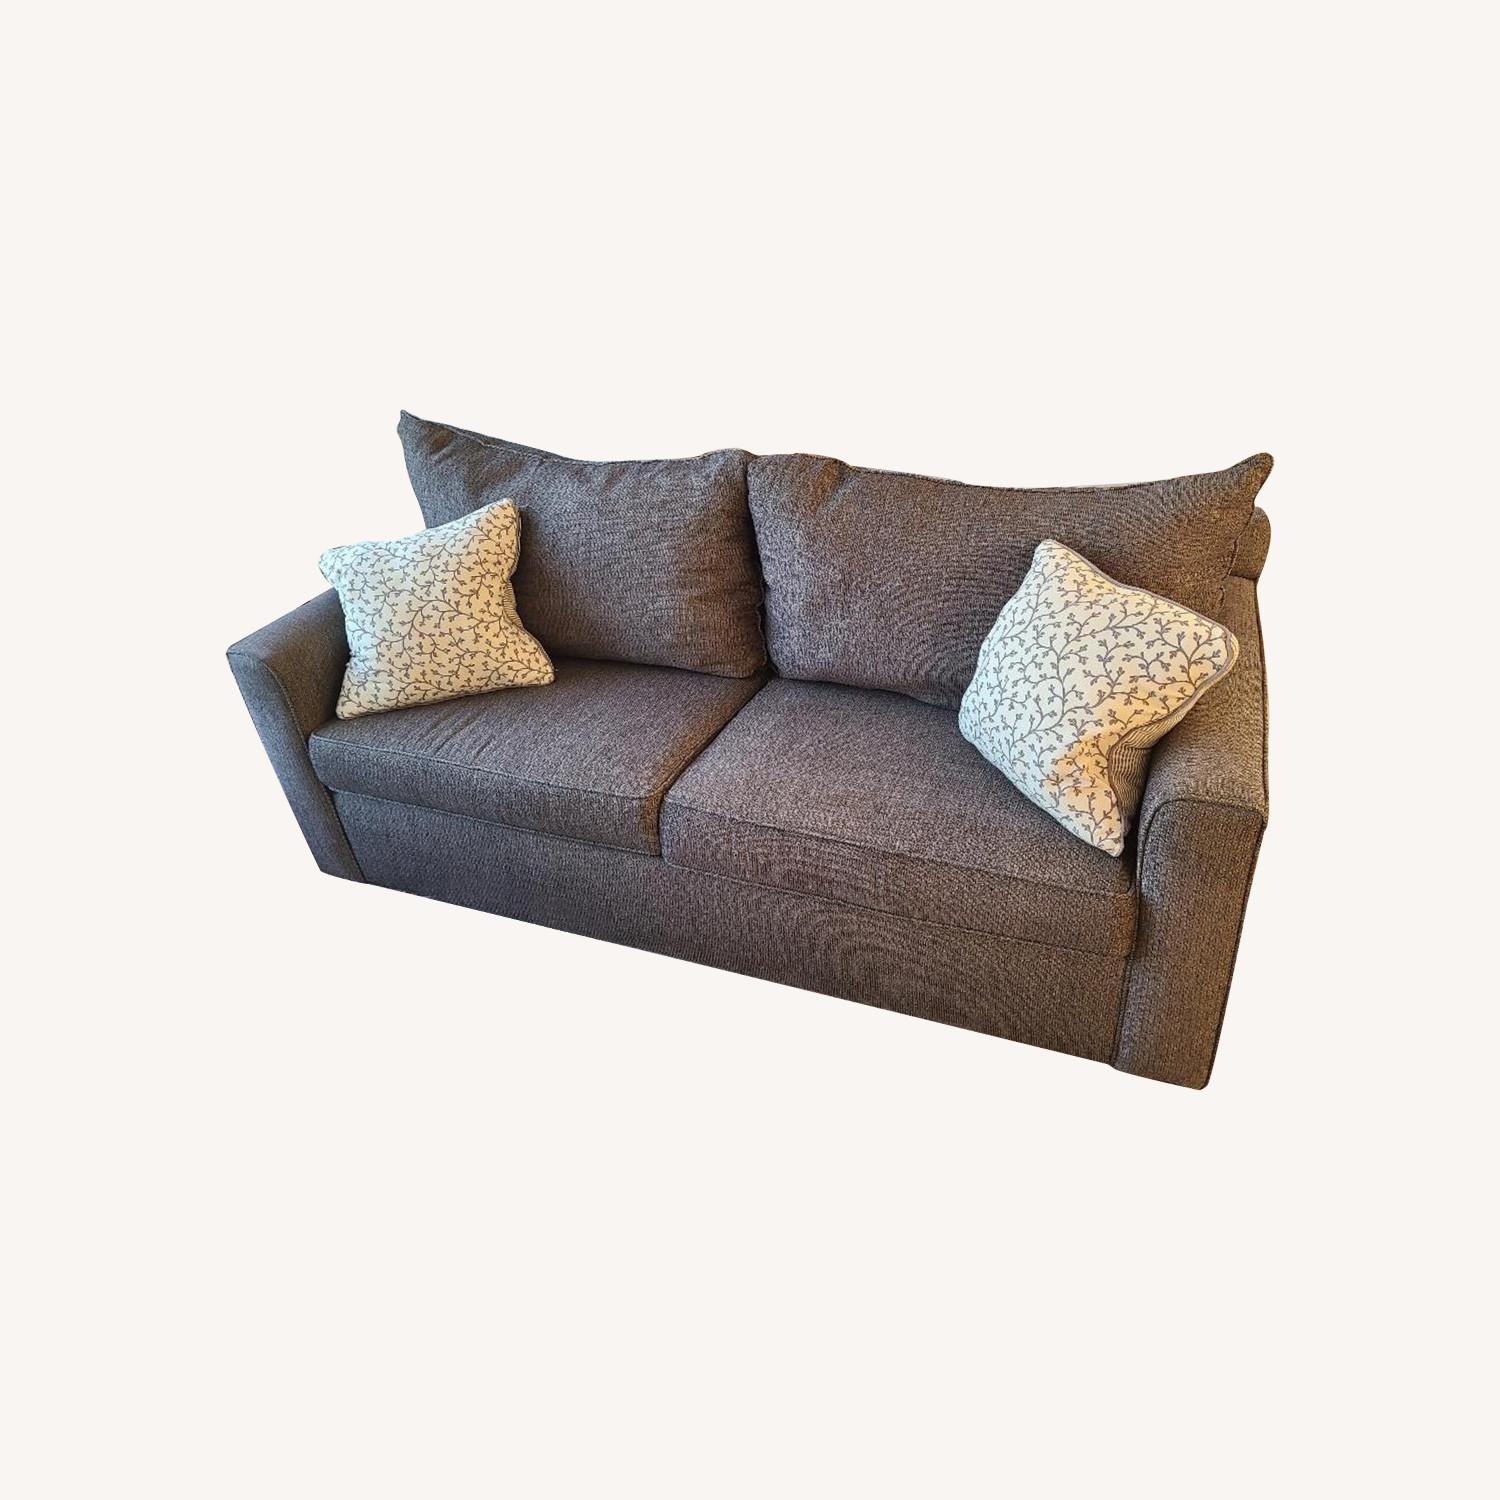 Raymour and Flannigan Tracey Queen Sleeper Sofa - image-0